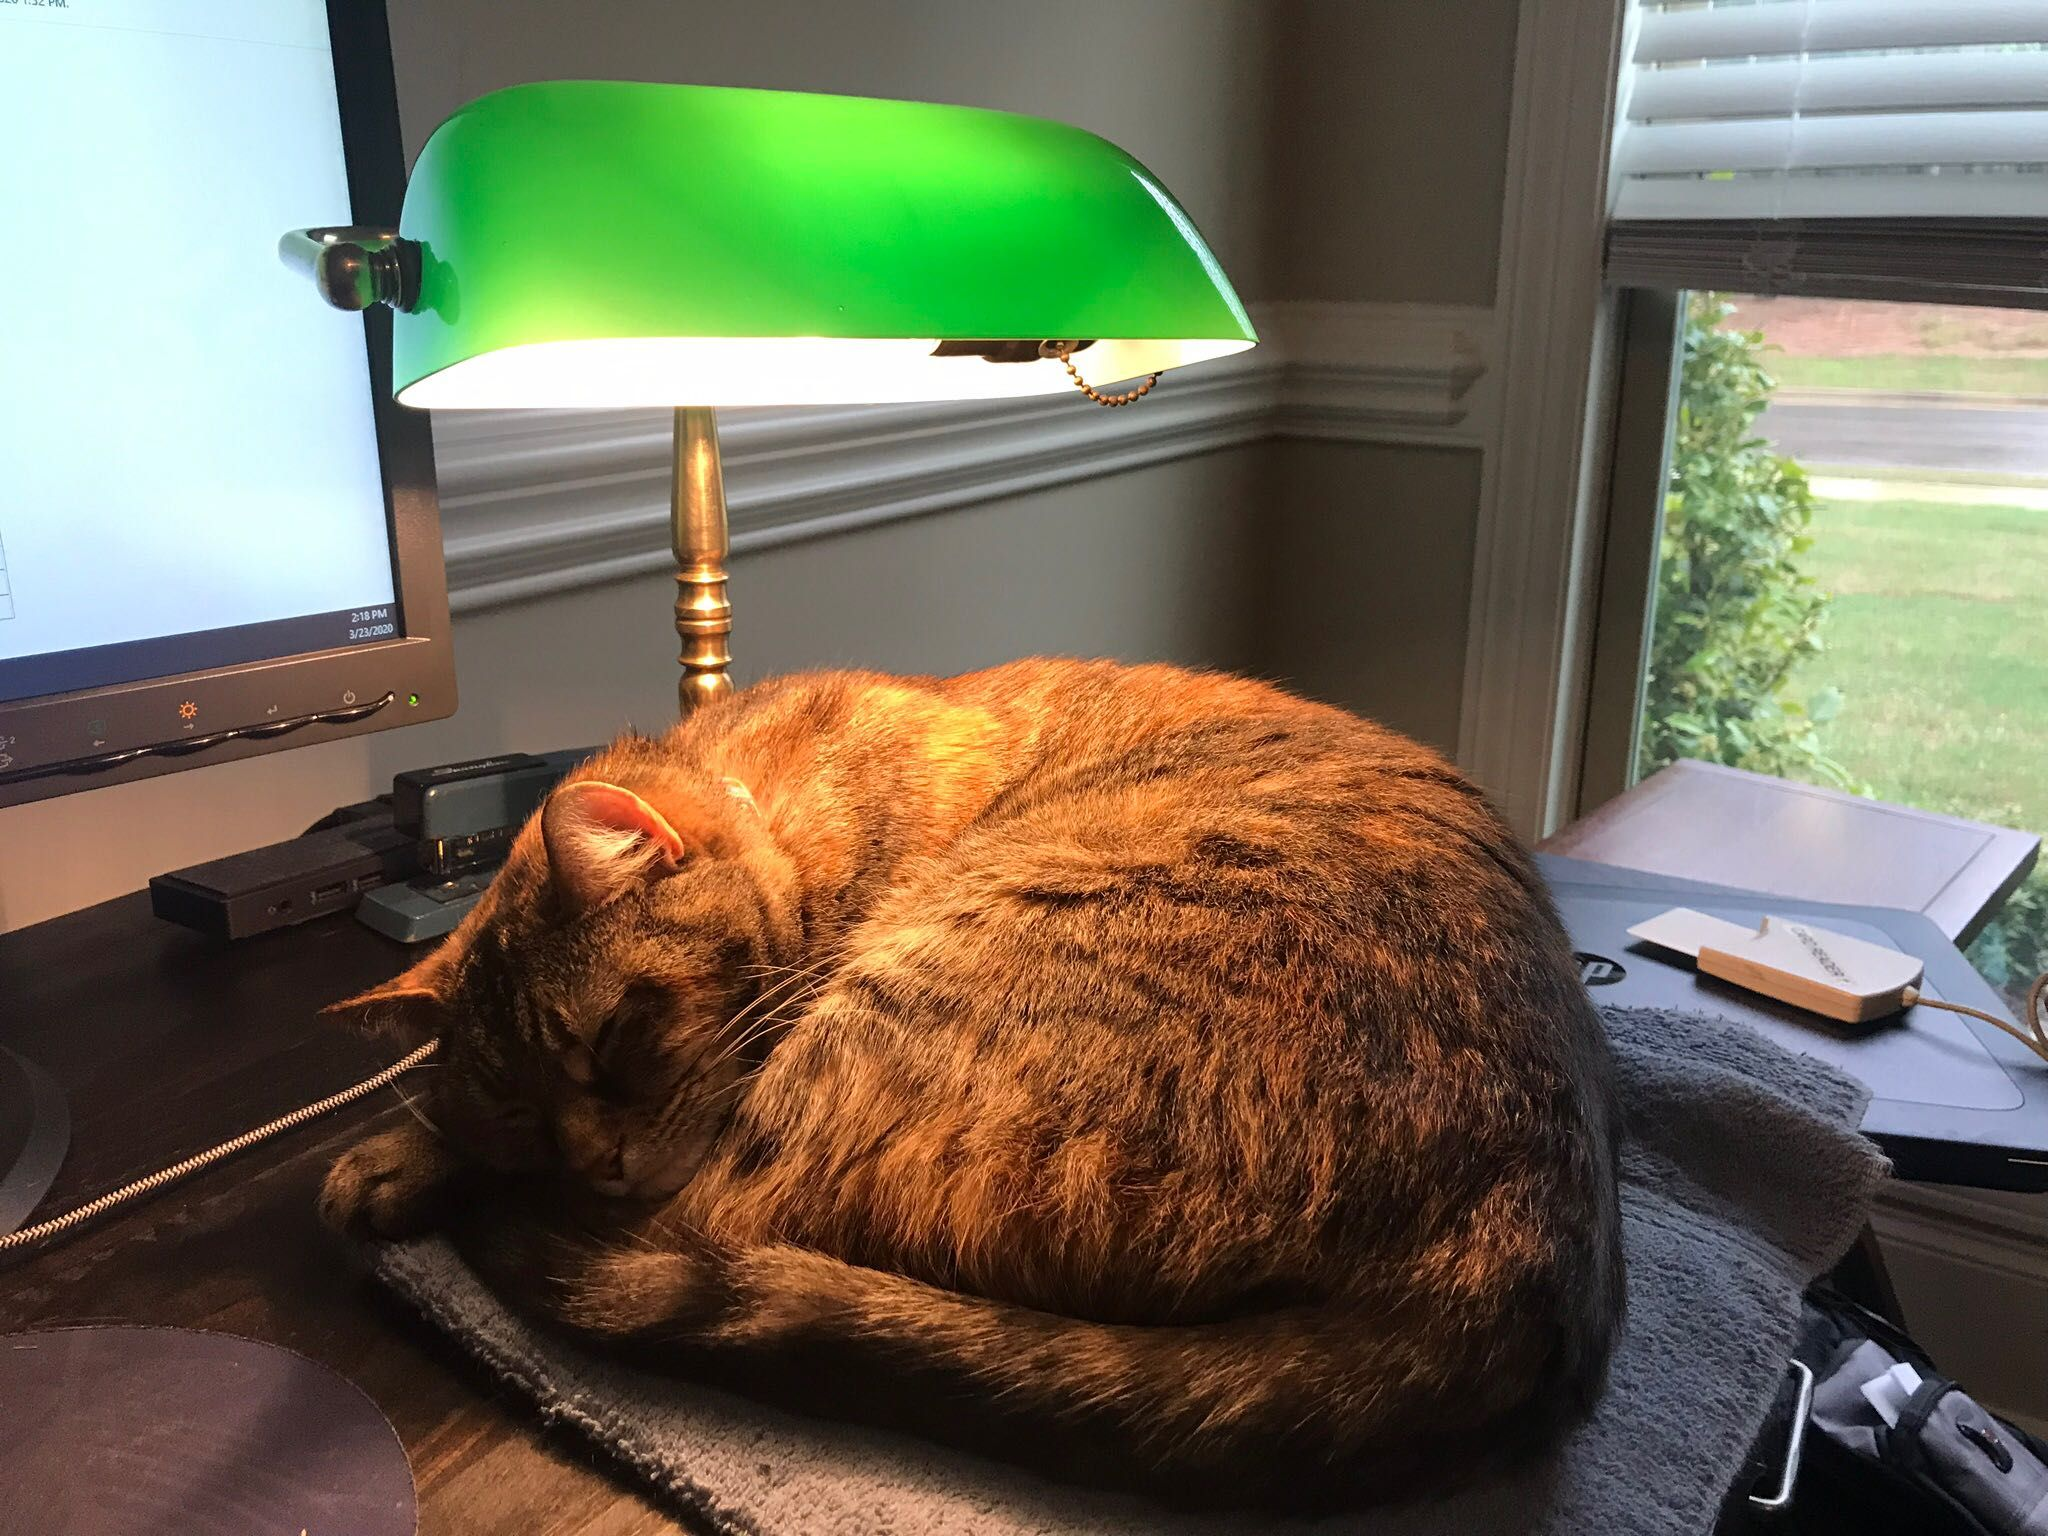 Chessie Loves To Sleep Under My Desk Lamp Https Ift Tt 2ugndia In 2020 Worms In Dogs Pet Holiday Moving With A Dog